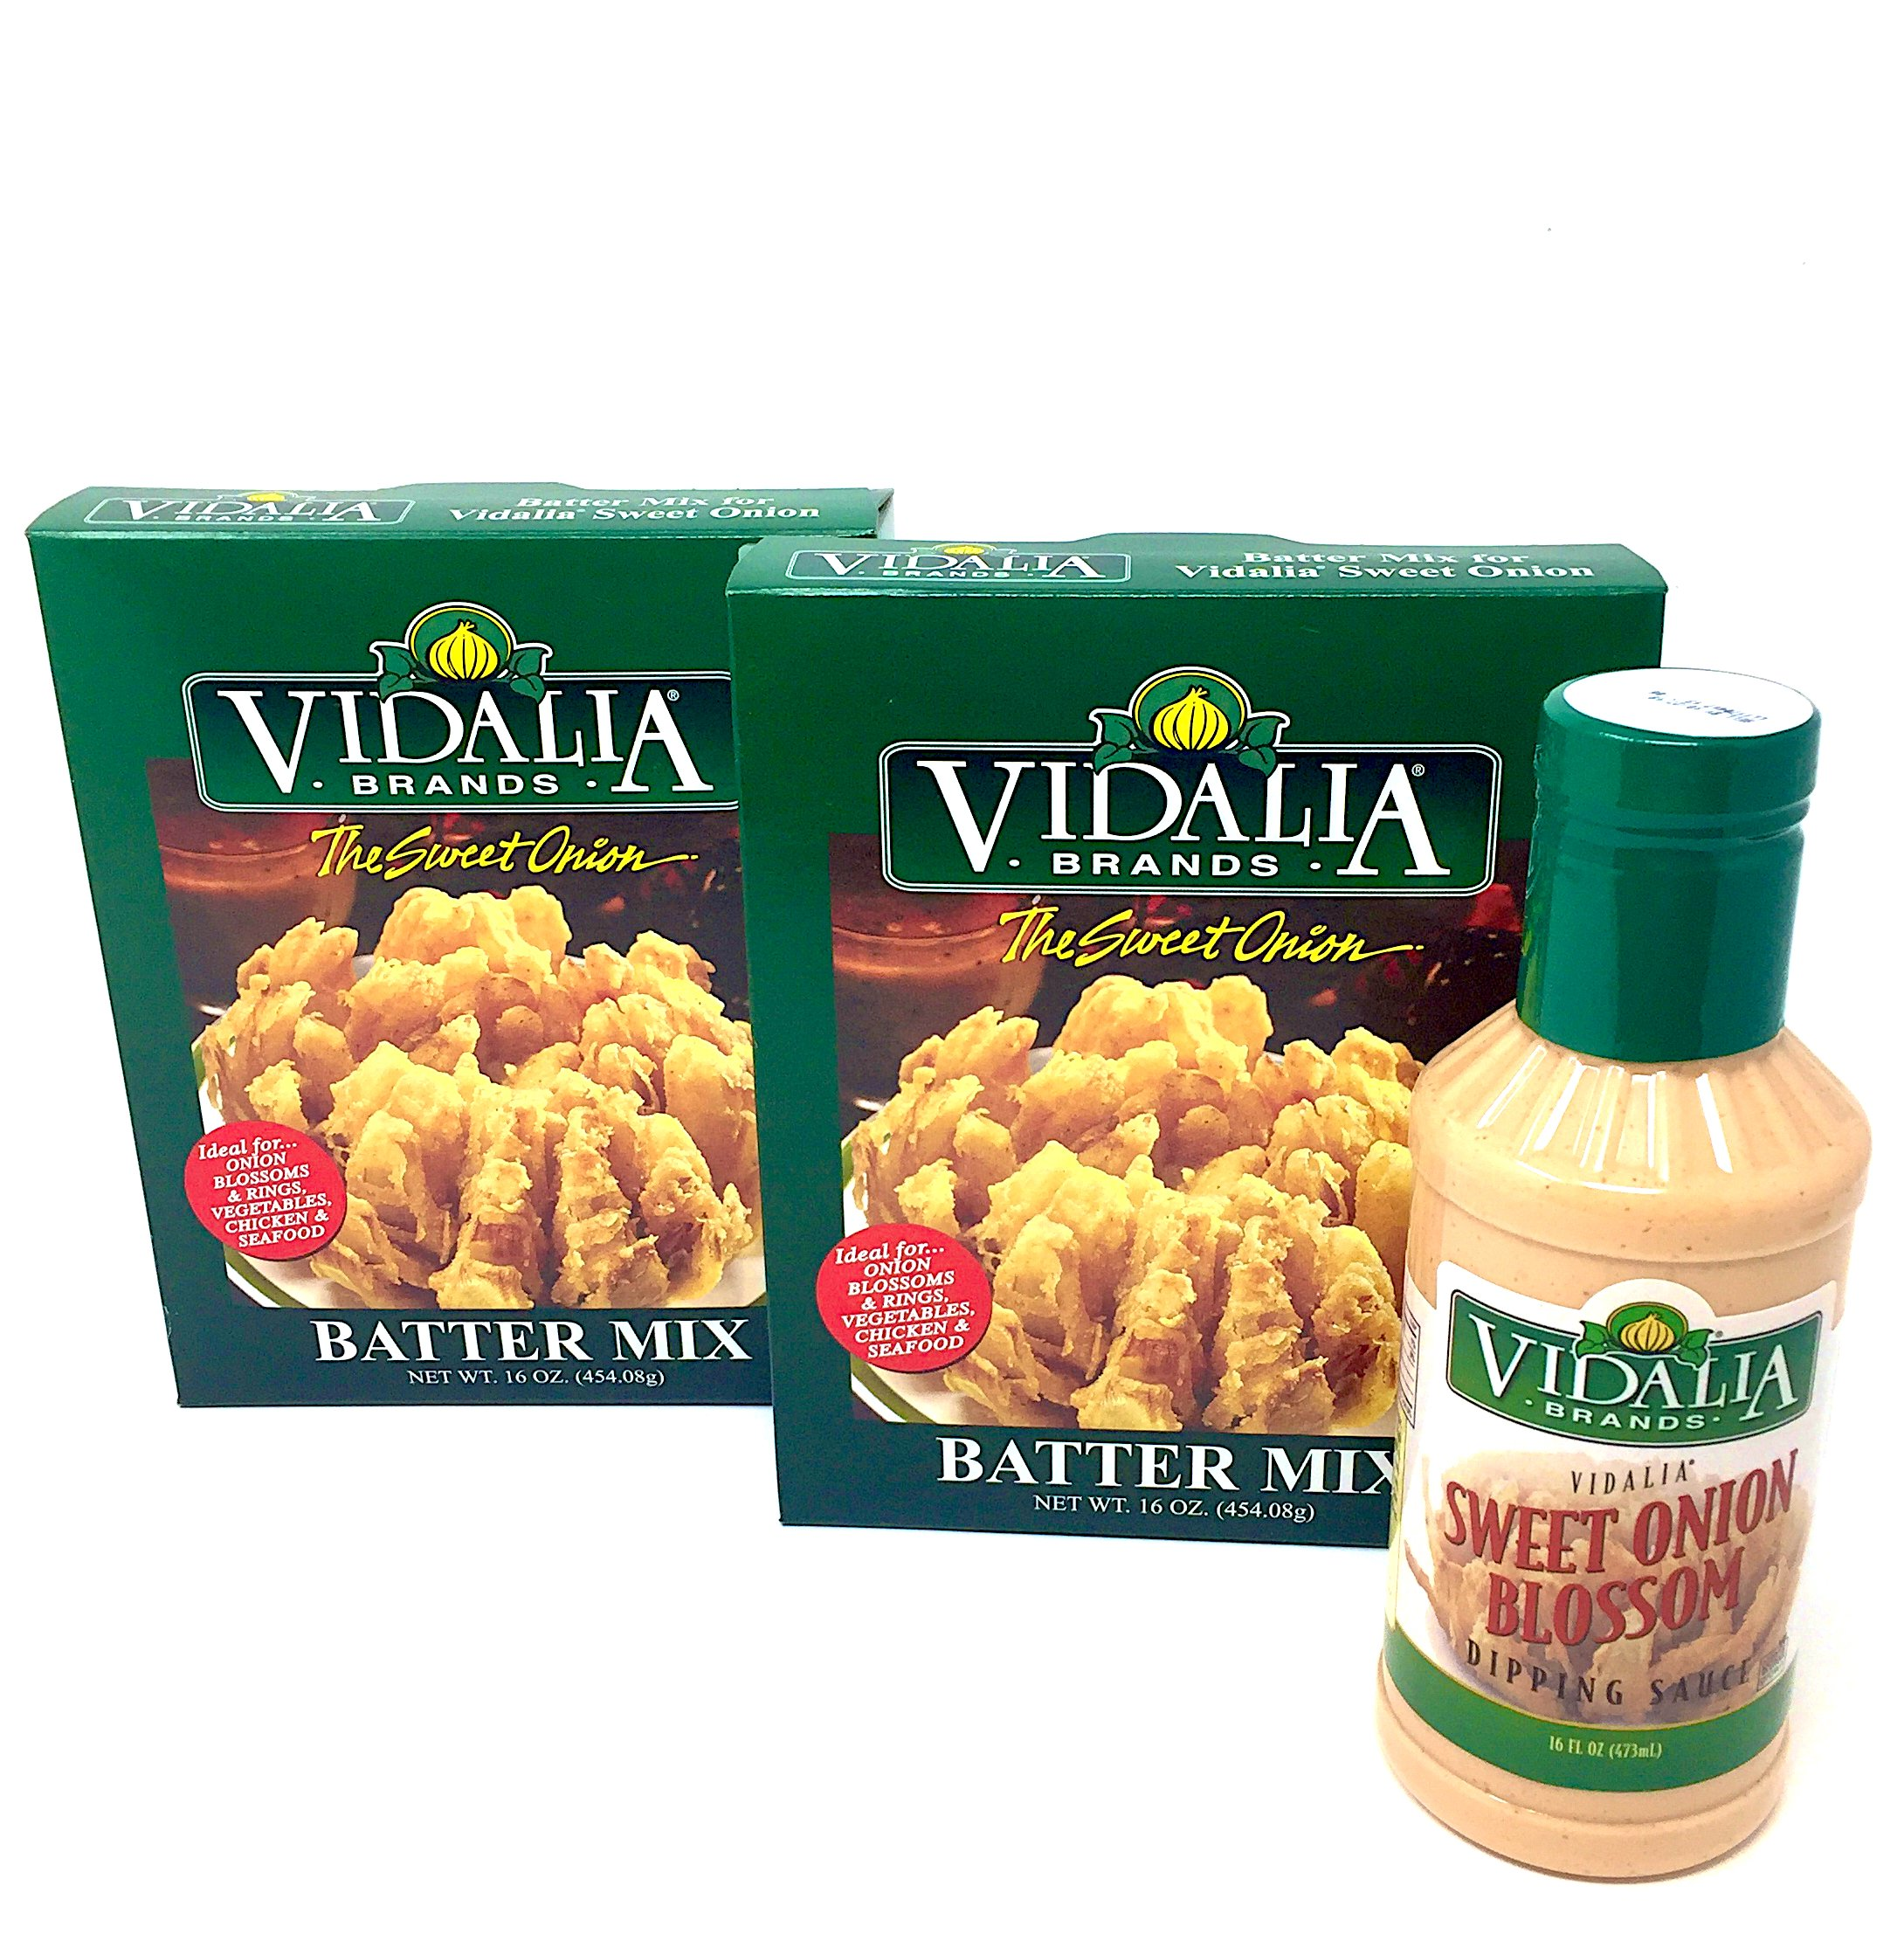 Fried Batter Mix and Blossom Dipping Sauce - Vidalia Brands - Blooming Onion, Chicken Fingers, Fish, Fried Mushrooms, More!